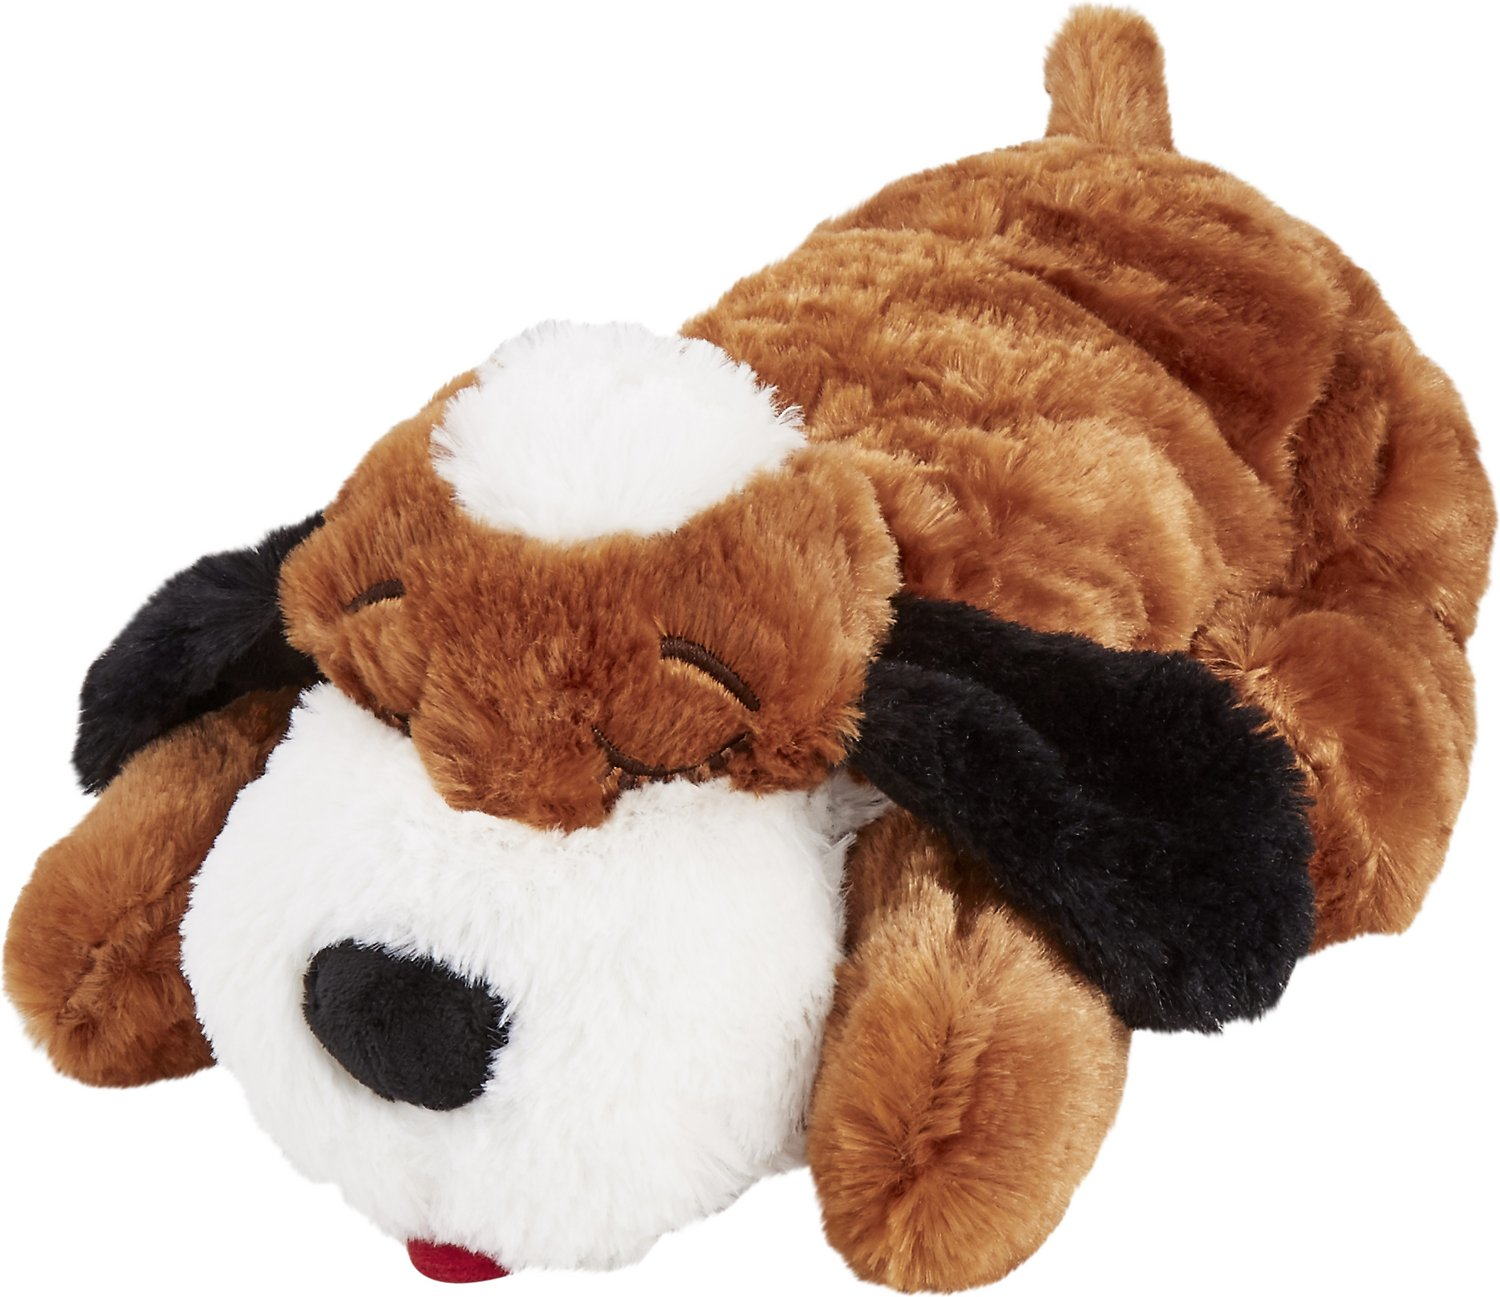 Smart Pet Love Snuggle Puppy Behavioral Aid Dog Toy, Brown & White